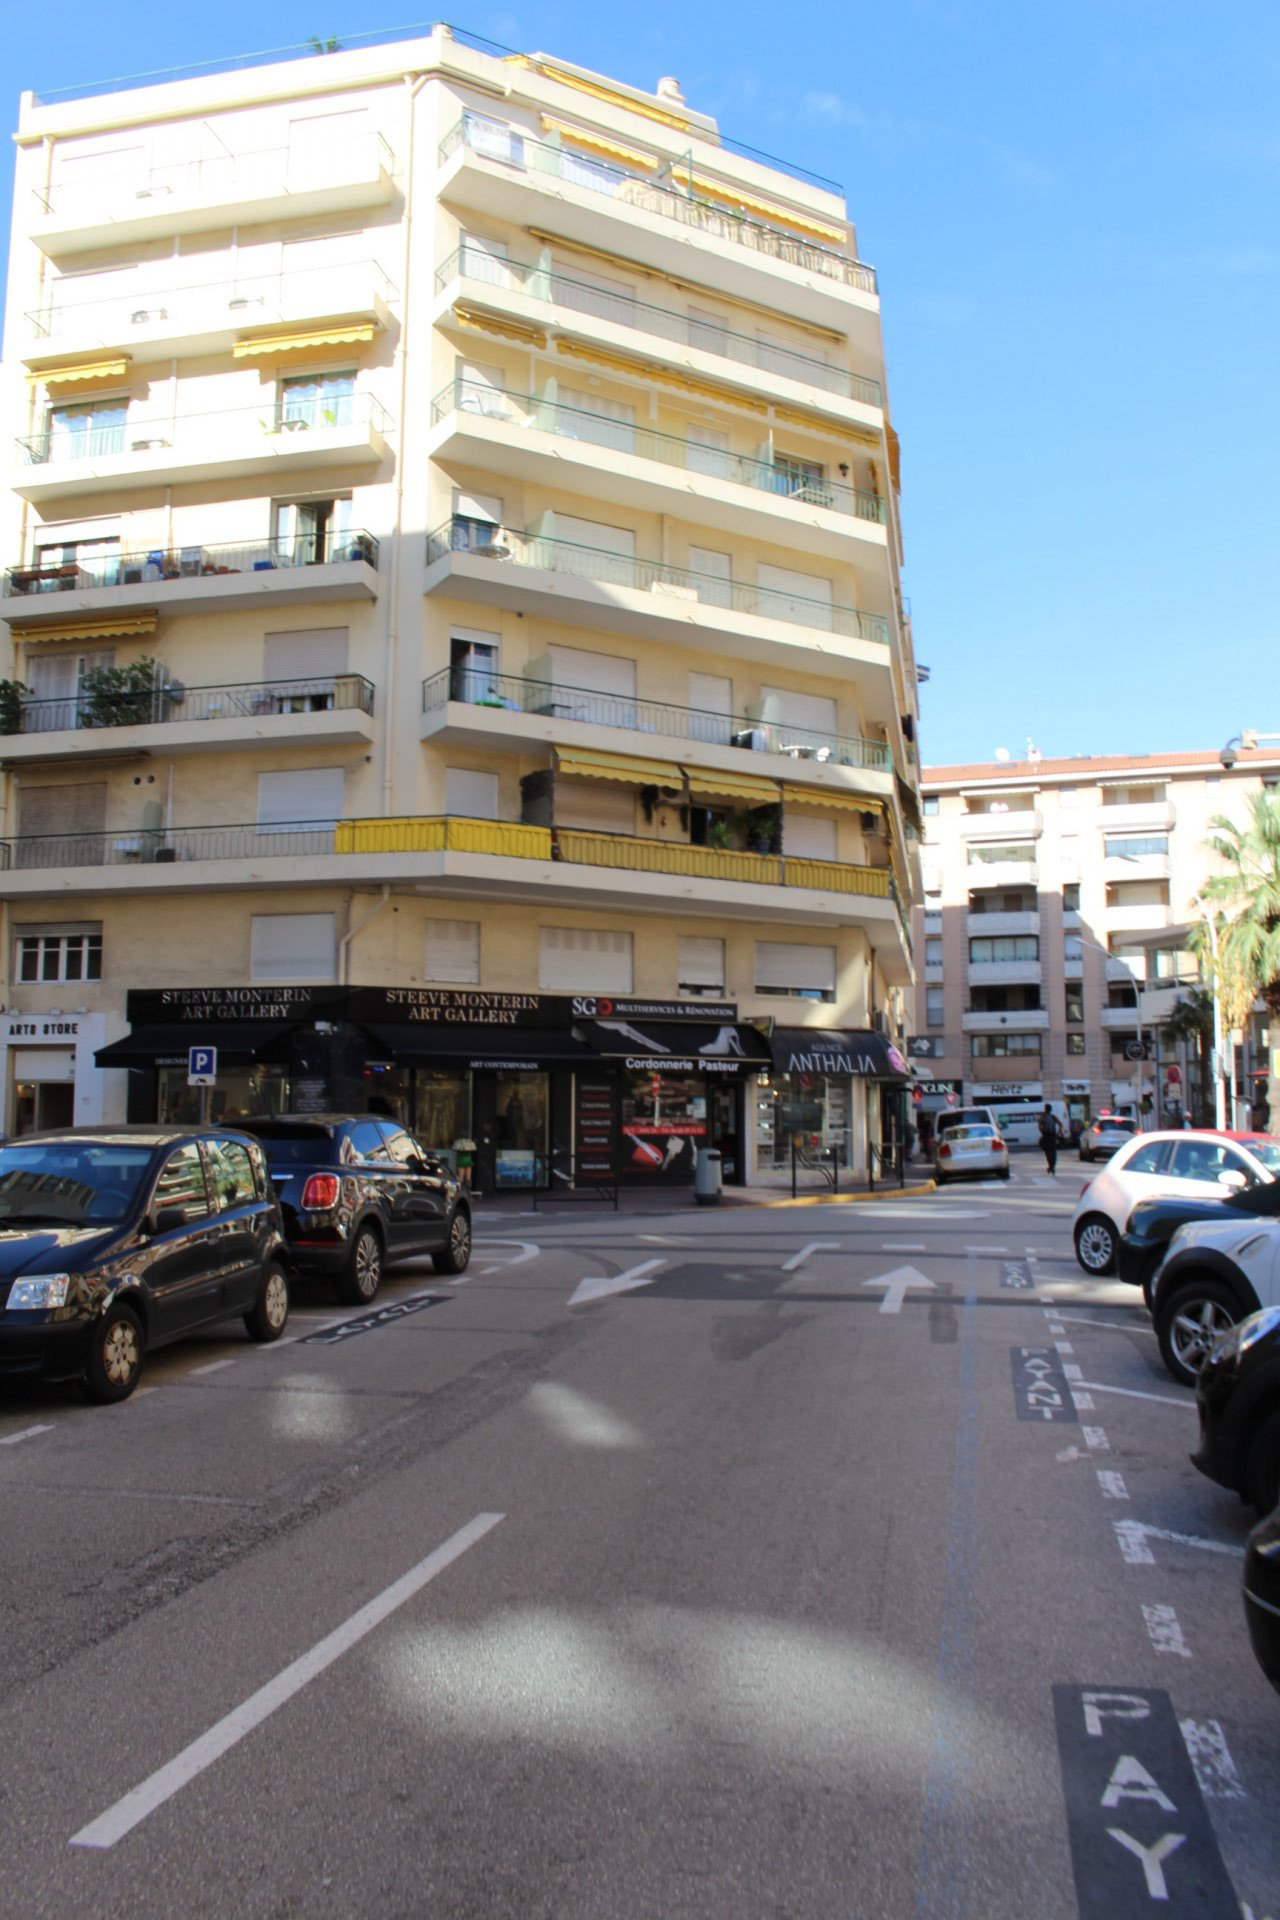 Affitto stagionale Appartamento - Cannes Banane